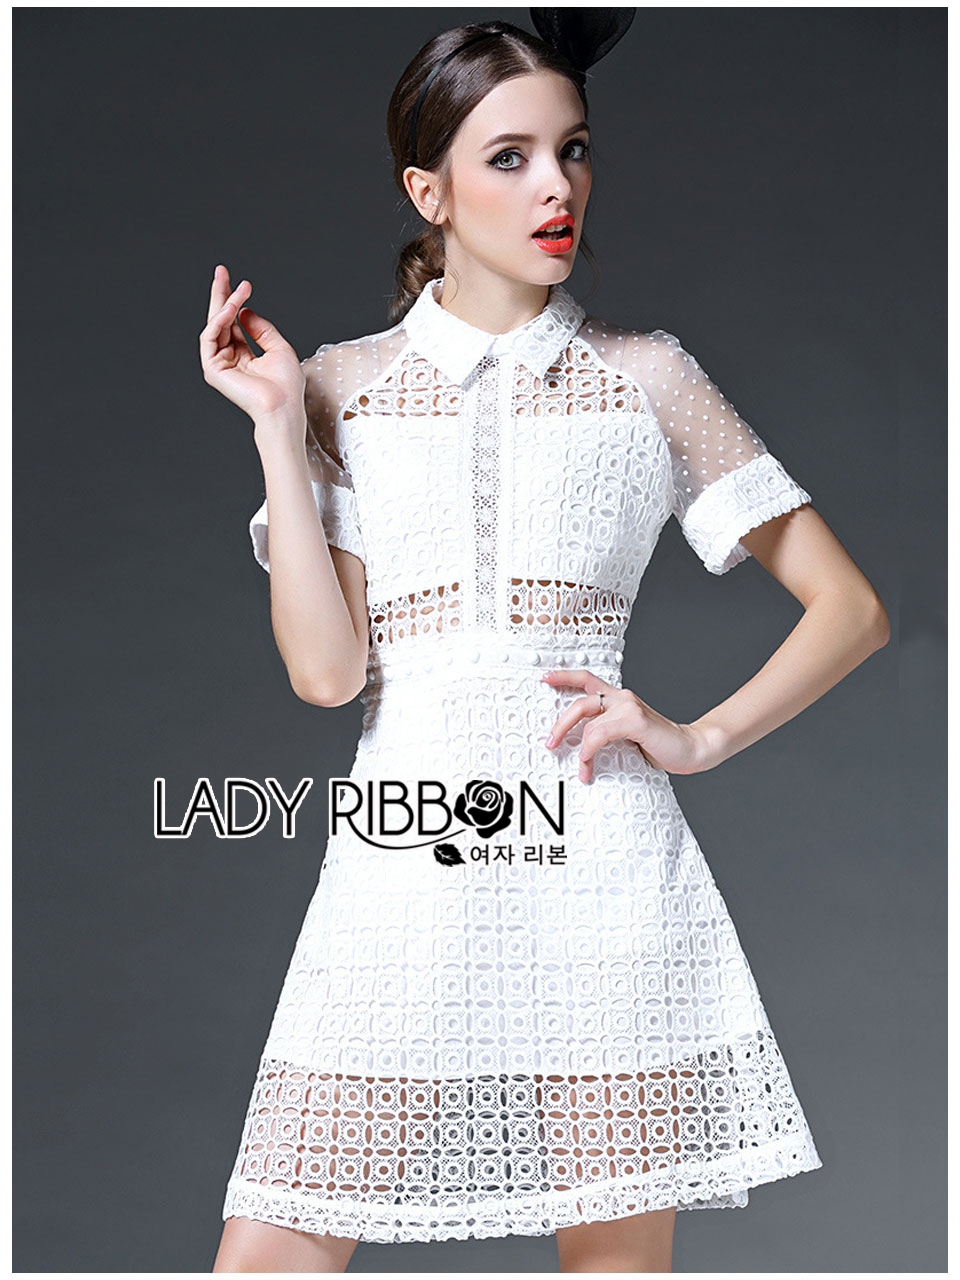 Lady Ribbon's Made Lady Taylor Sweet Preppy Collared White Lace Dress